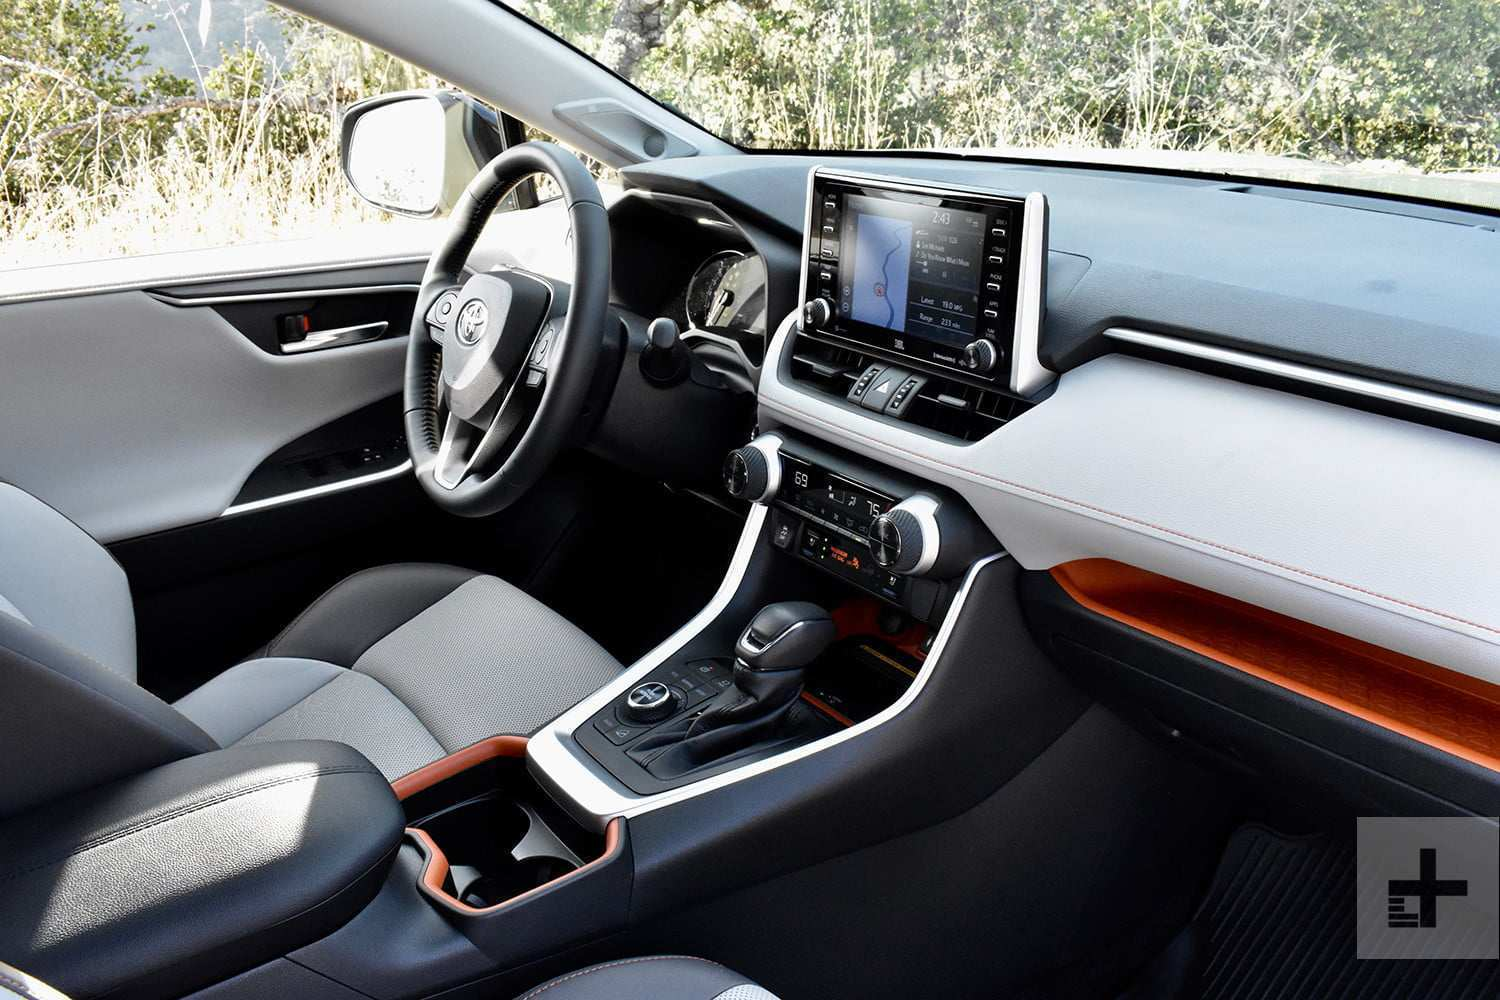 94 The Best Toyota Rav4 2020 Interior Redesign And Review